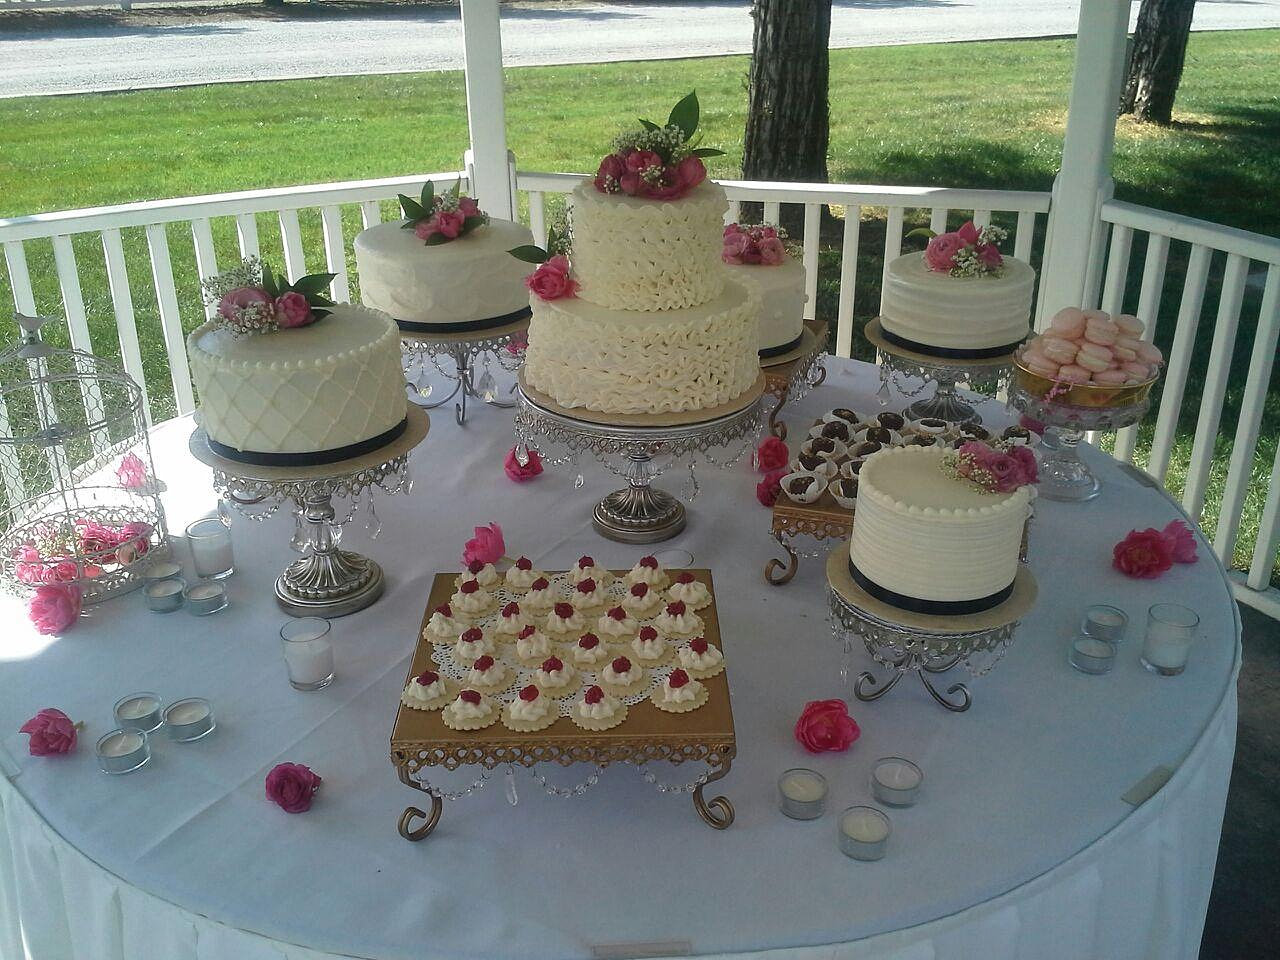 wedding cakes visalia ca goodies cookies amp cakes birthday amp wedding cake bakery 25885